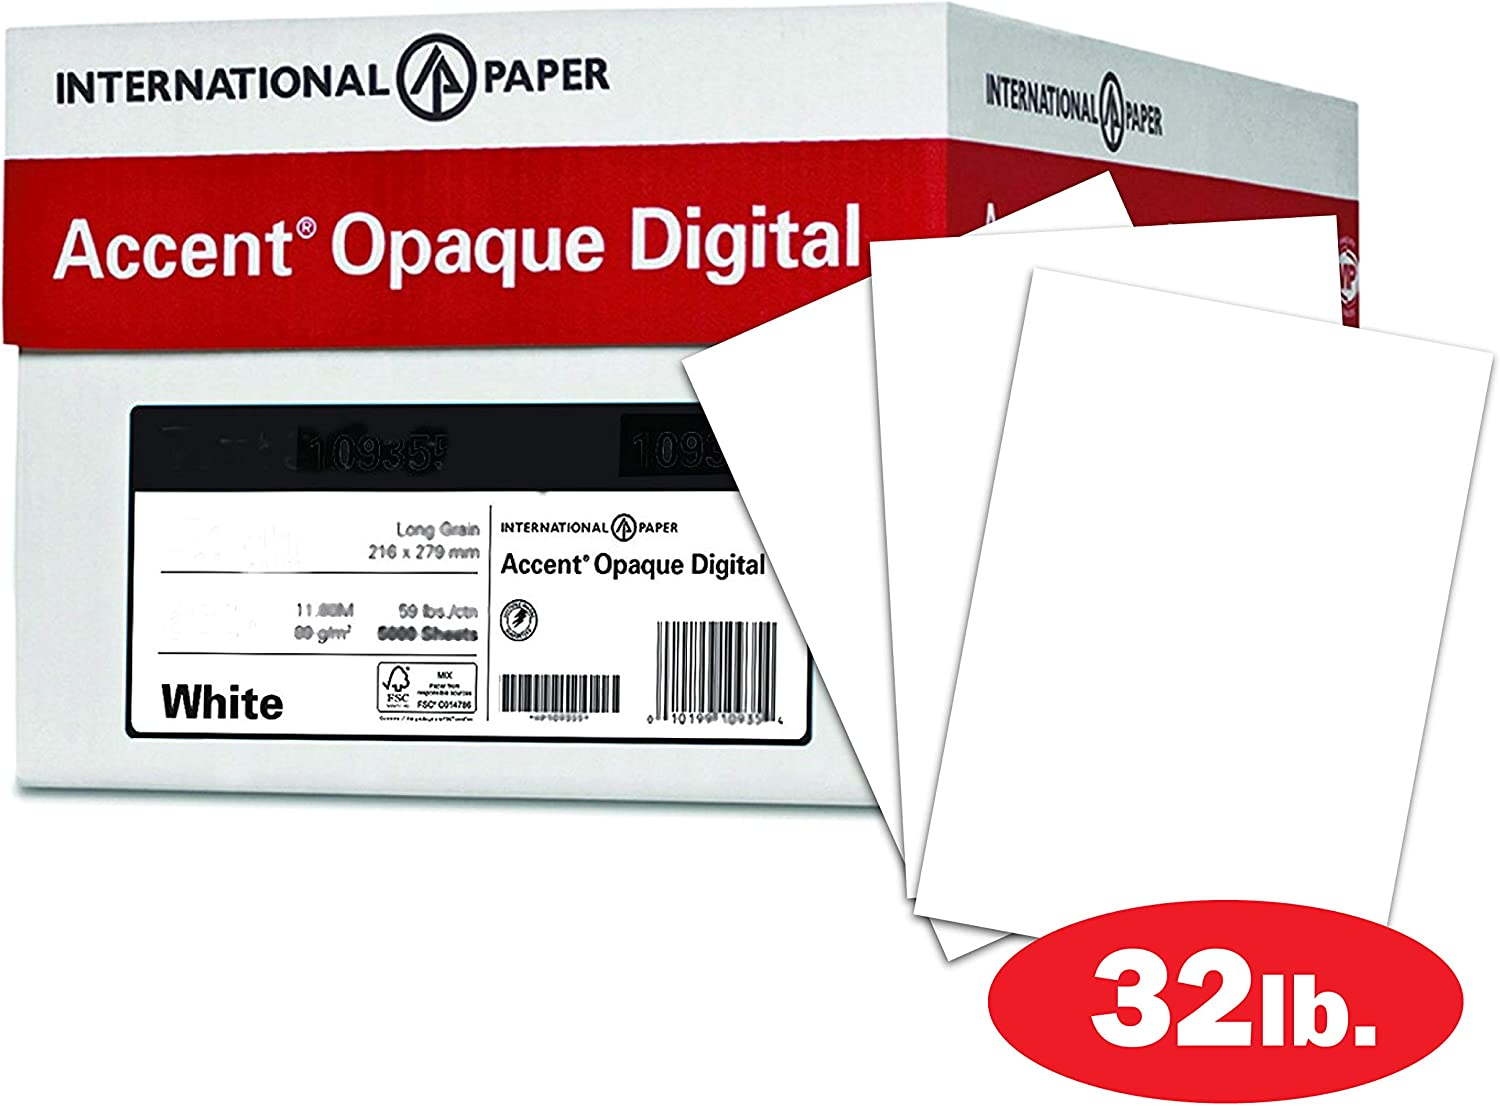 Accent Opaque Printer Paper, White Paper, 32lb Copy Paper, 13x19 Paper, 5 Reams / 1,500 Sheets - Super Smooth Finish (189035C)